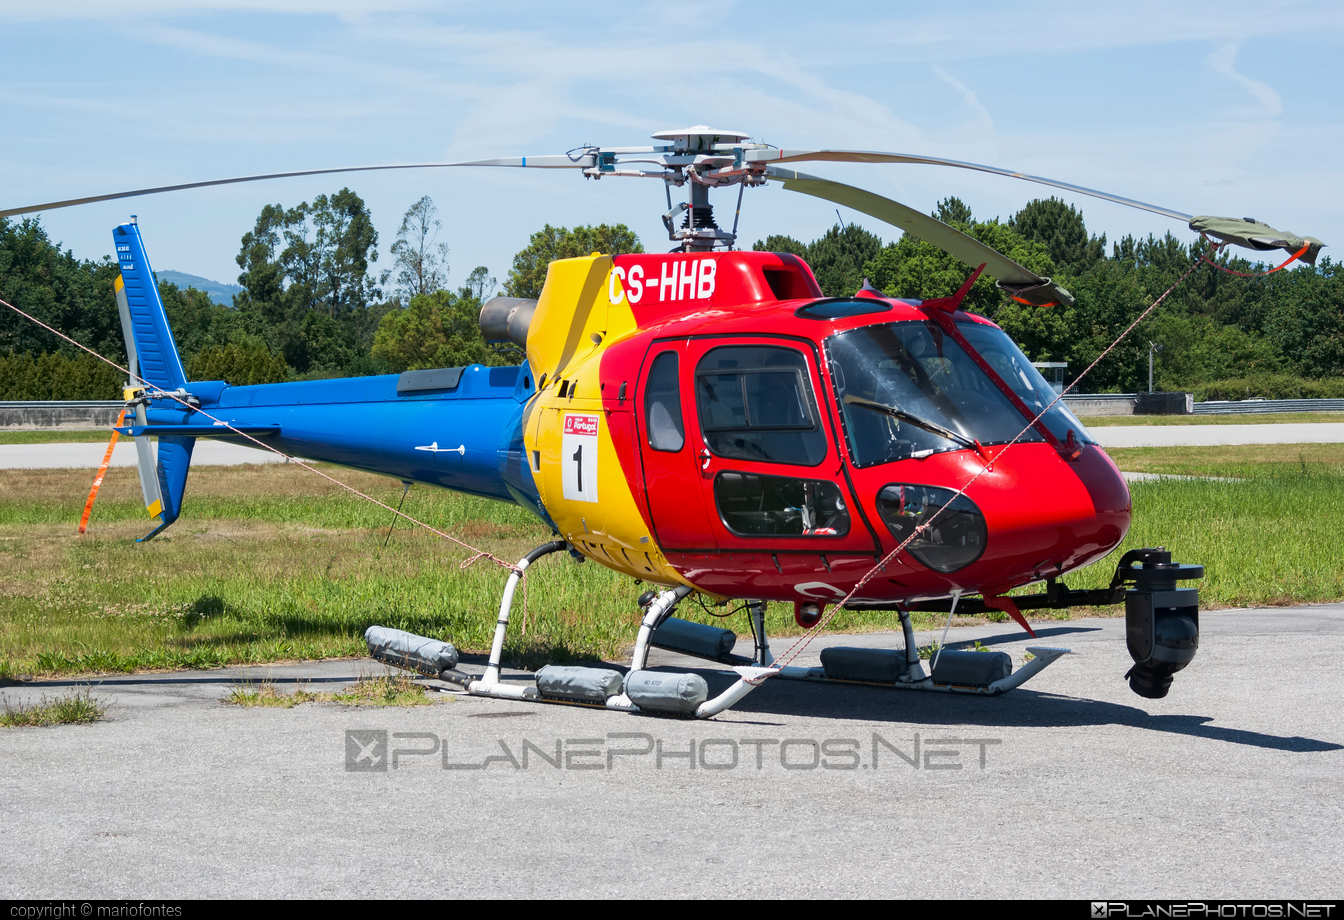 Eurocopter AS350 B3 Ecureuil - CS-HHB operated by HTA Helicópteros #eurocopter #htahelicopteros